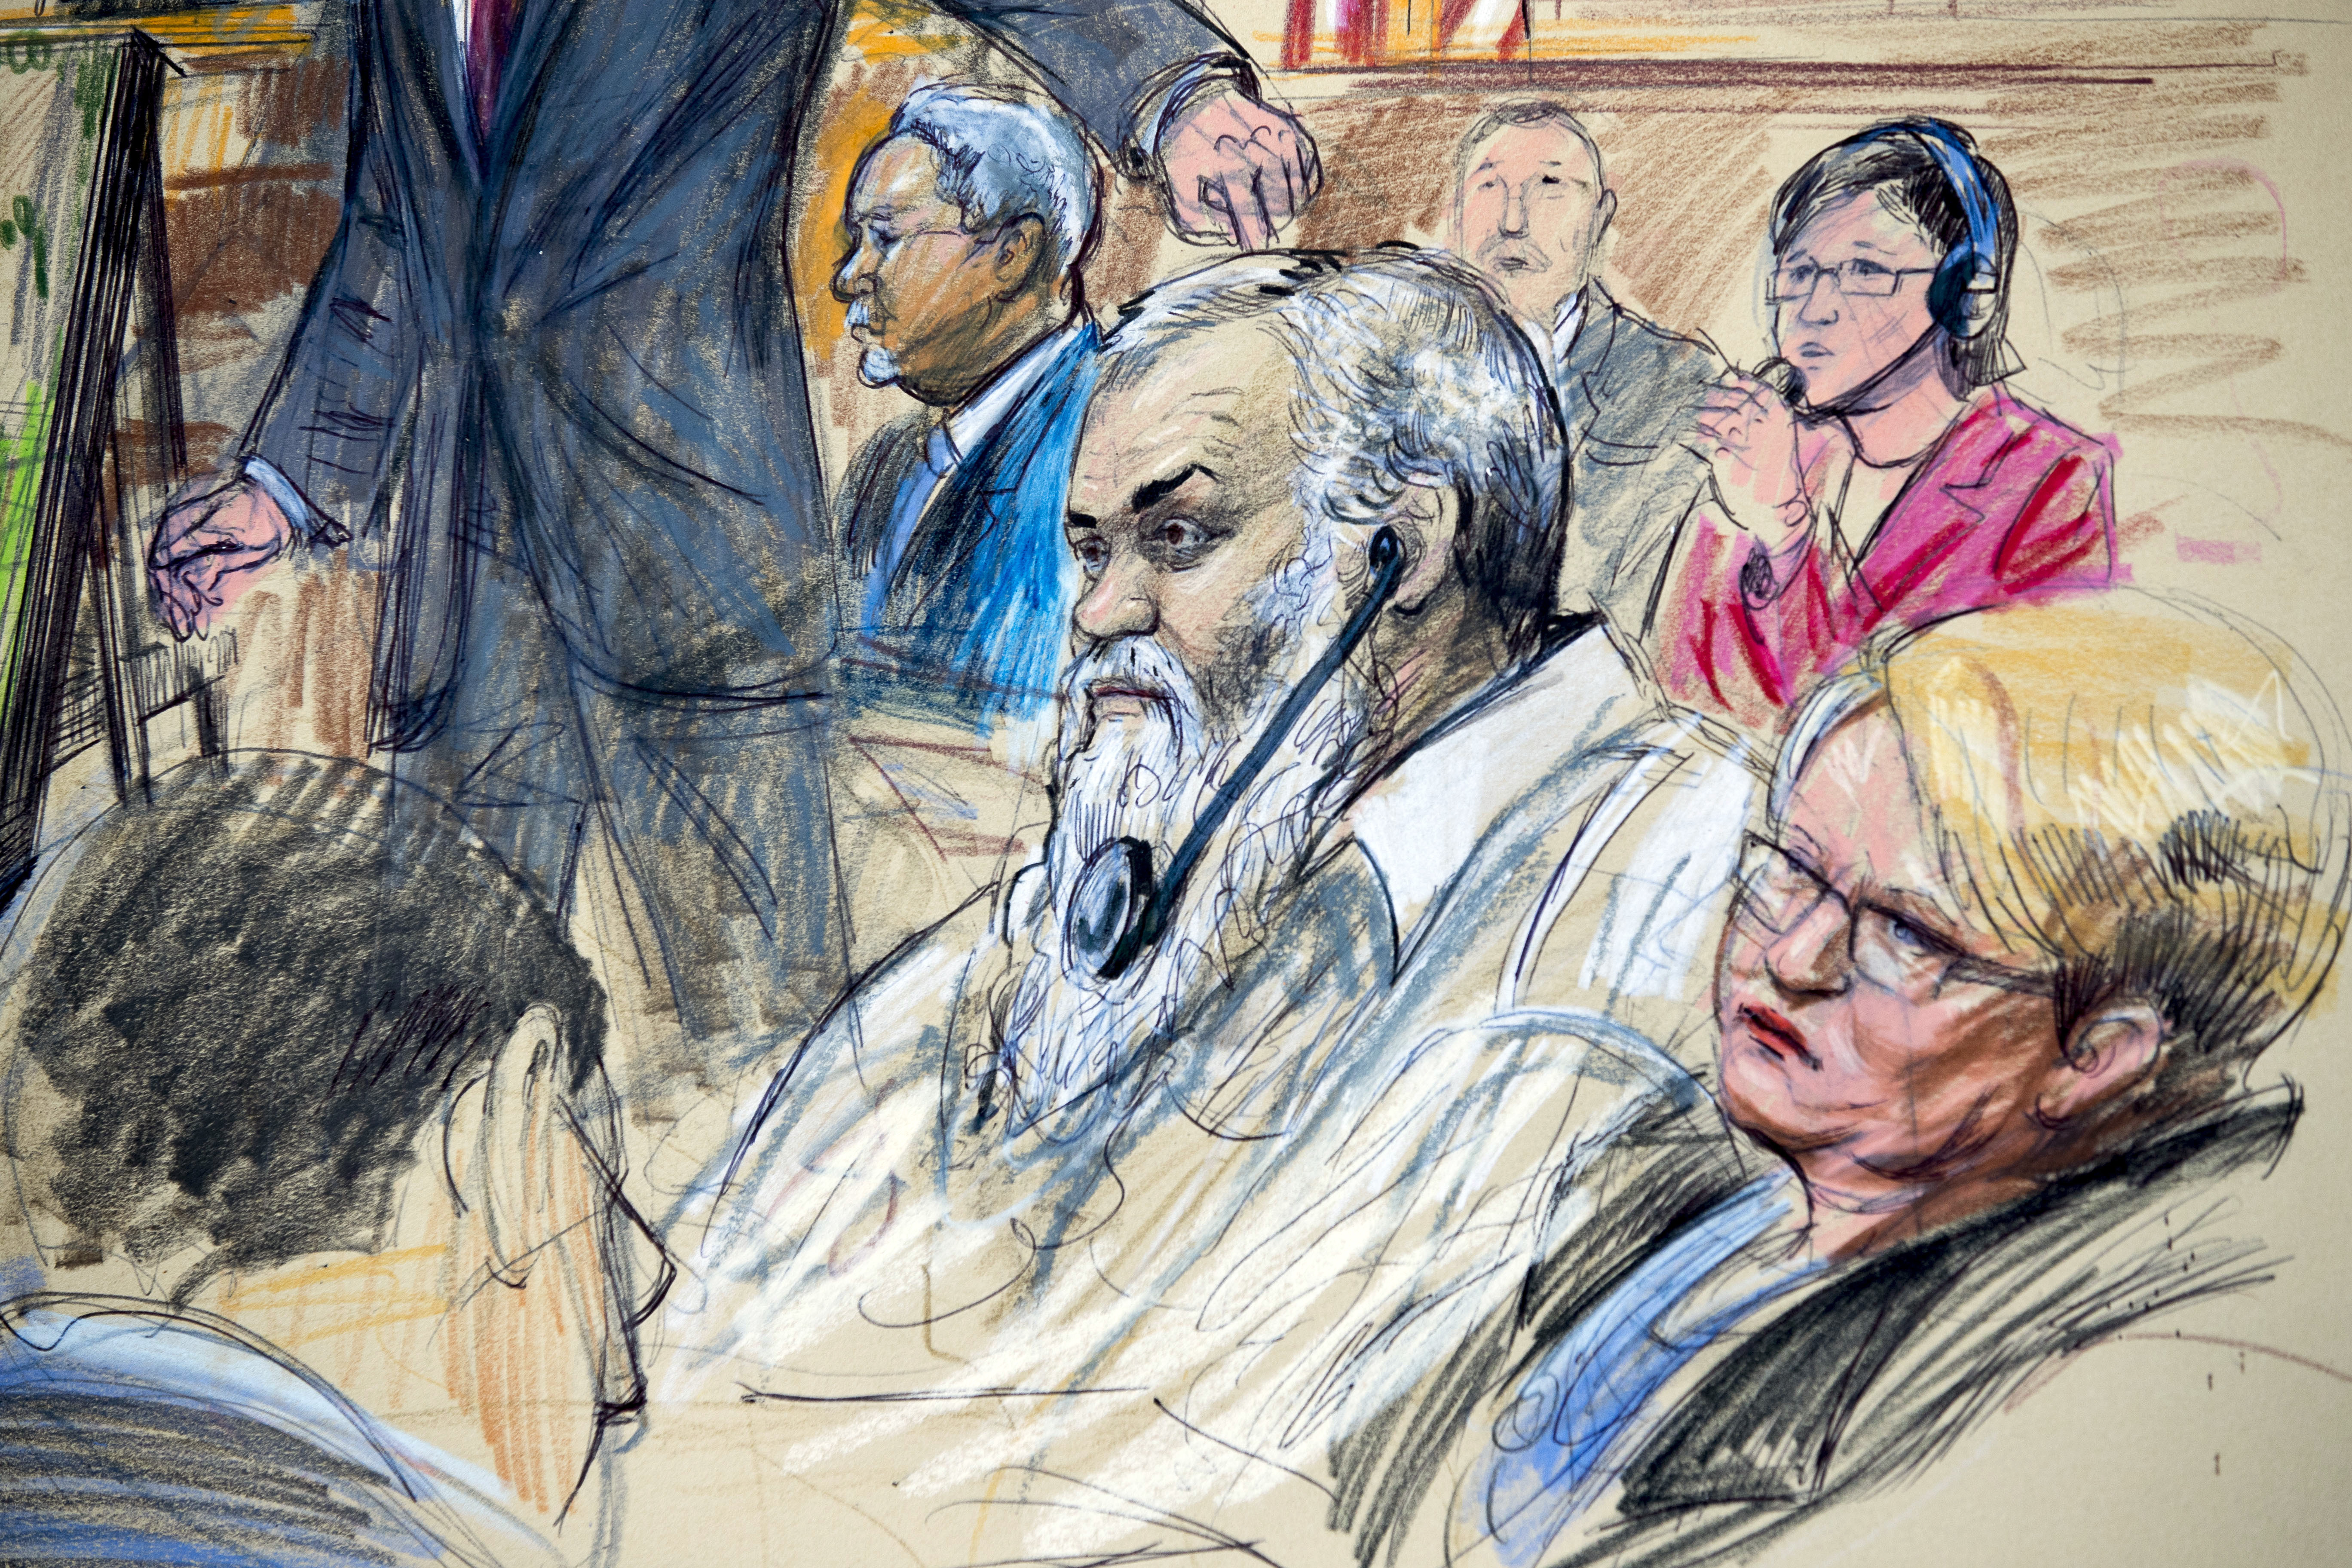 FILE - This Oct. 2, 2017, file courtroom sketch depicts Ahmed Abu Khattala listening to a interpreter through earphones during the opening statement by assistant U.S. attorney John Crabb, second from left, at federal court in Washington, in the trial presided by U.S. District Judge Christopher Cooper. Defense attorney Jeffery Robinson, sits behind Crabb in a light blue suit and Michelle Peterson, also a member of the defense team, is at far right. A federal jury has found a suspected Libyan militant not guilty of the most serious charges stemming from the 2012 Benghazi attacks that killed the U.S. ambassador and three other Americans. Jurors on Nov. 28, 2017, convicted Ahmed Abu Khattala of terrorism-related charges but acquitted him of murder. (Dana Verkouteren via AP)